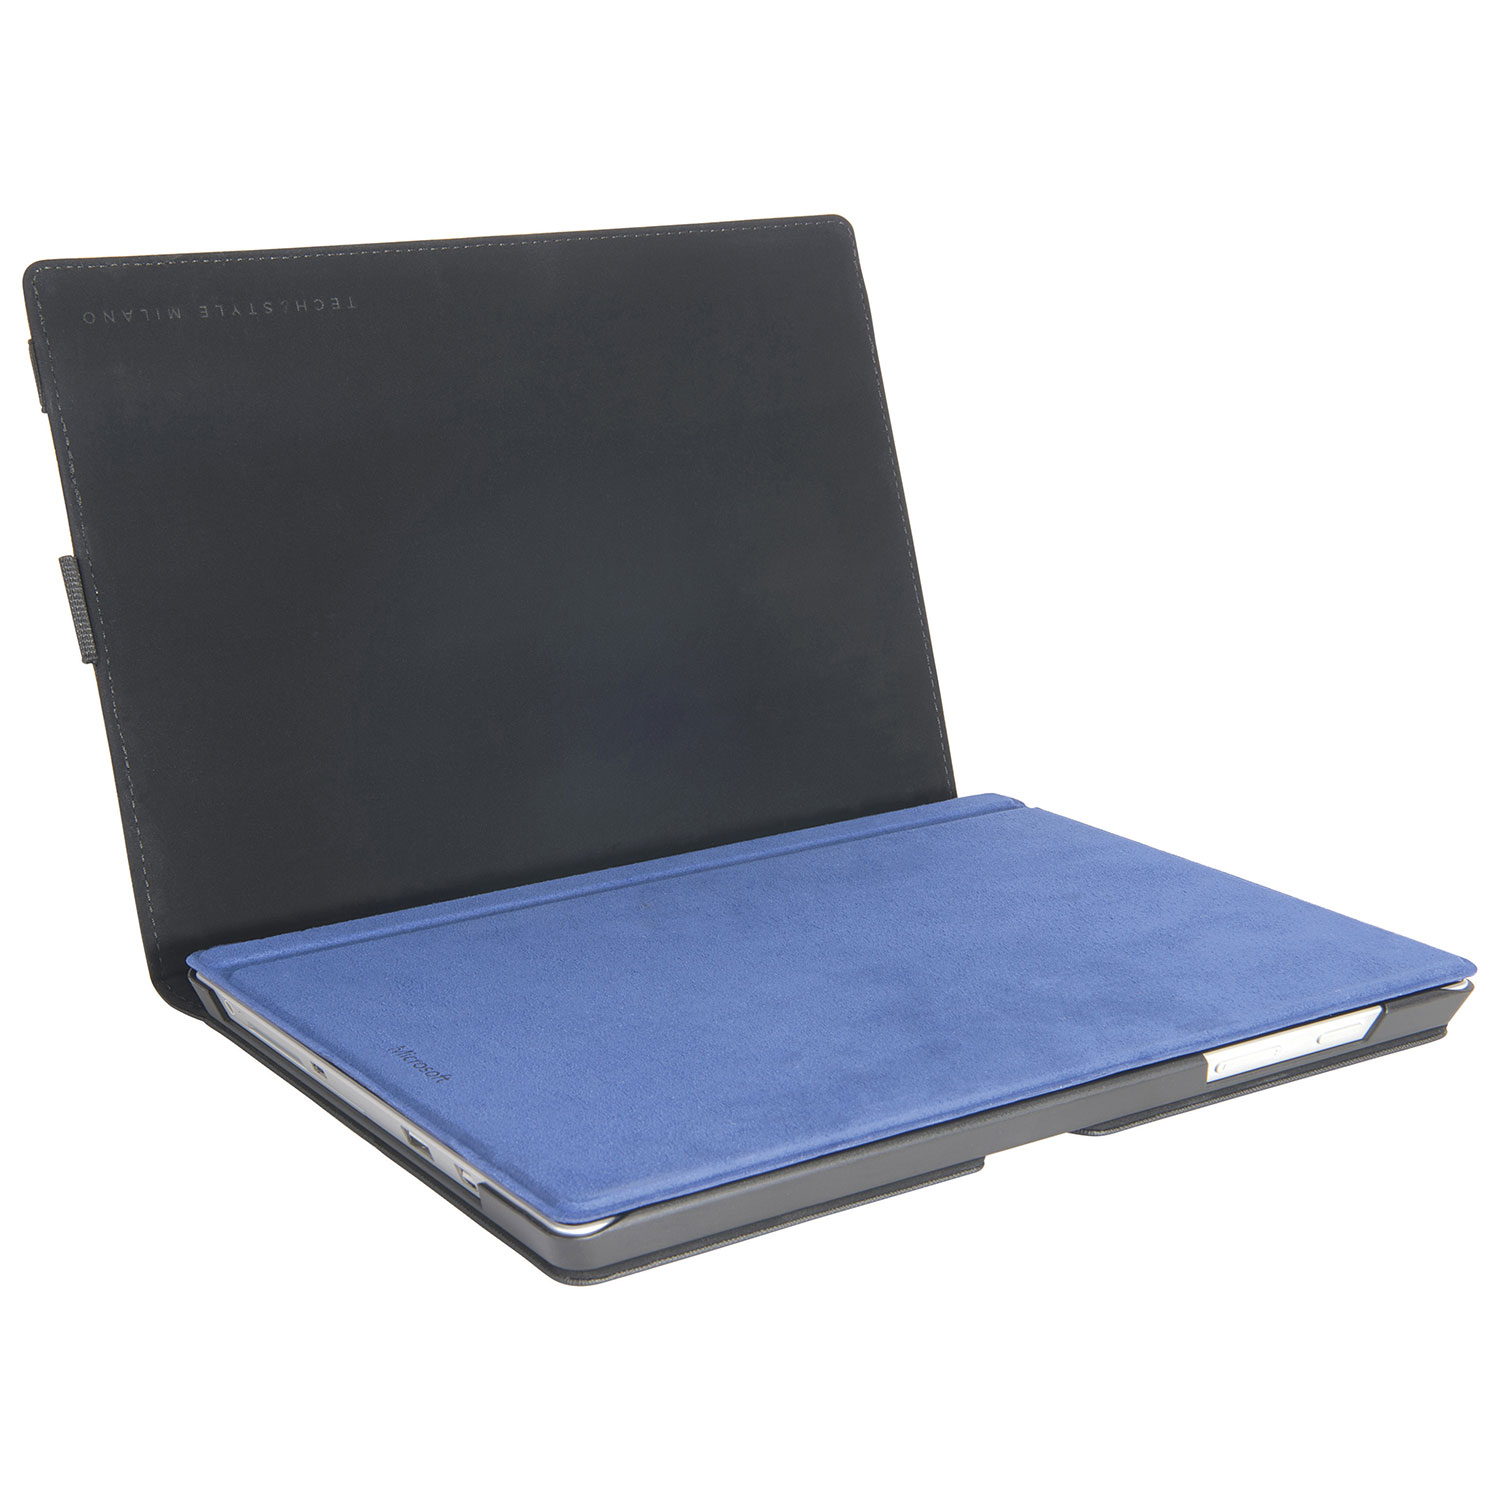 Top 10 microsoft surface pro 3 cases covers best microsoft surface pro - Tucano Milano Microsoft Surface Pro 4 Folio Case Black Tablet Ipad Cases Best Buy Canada